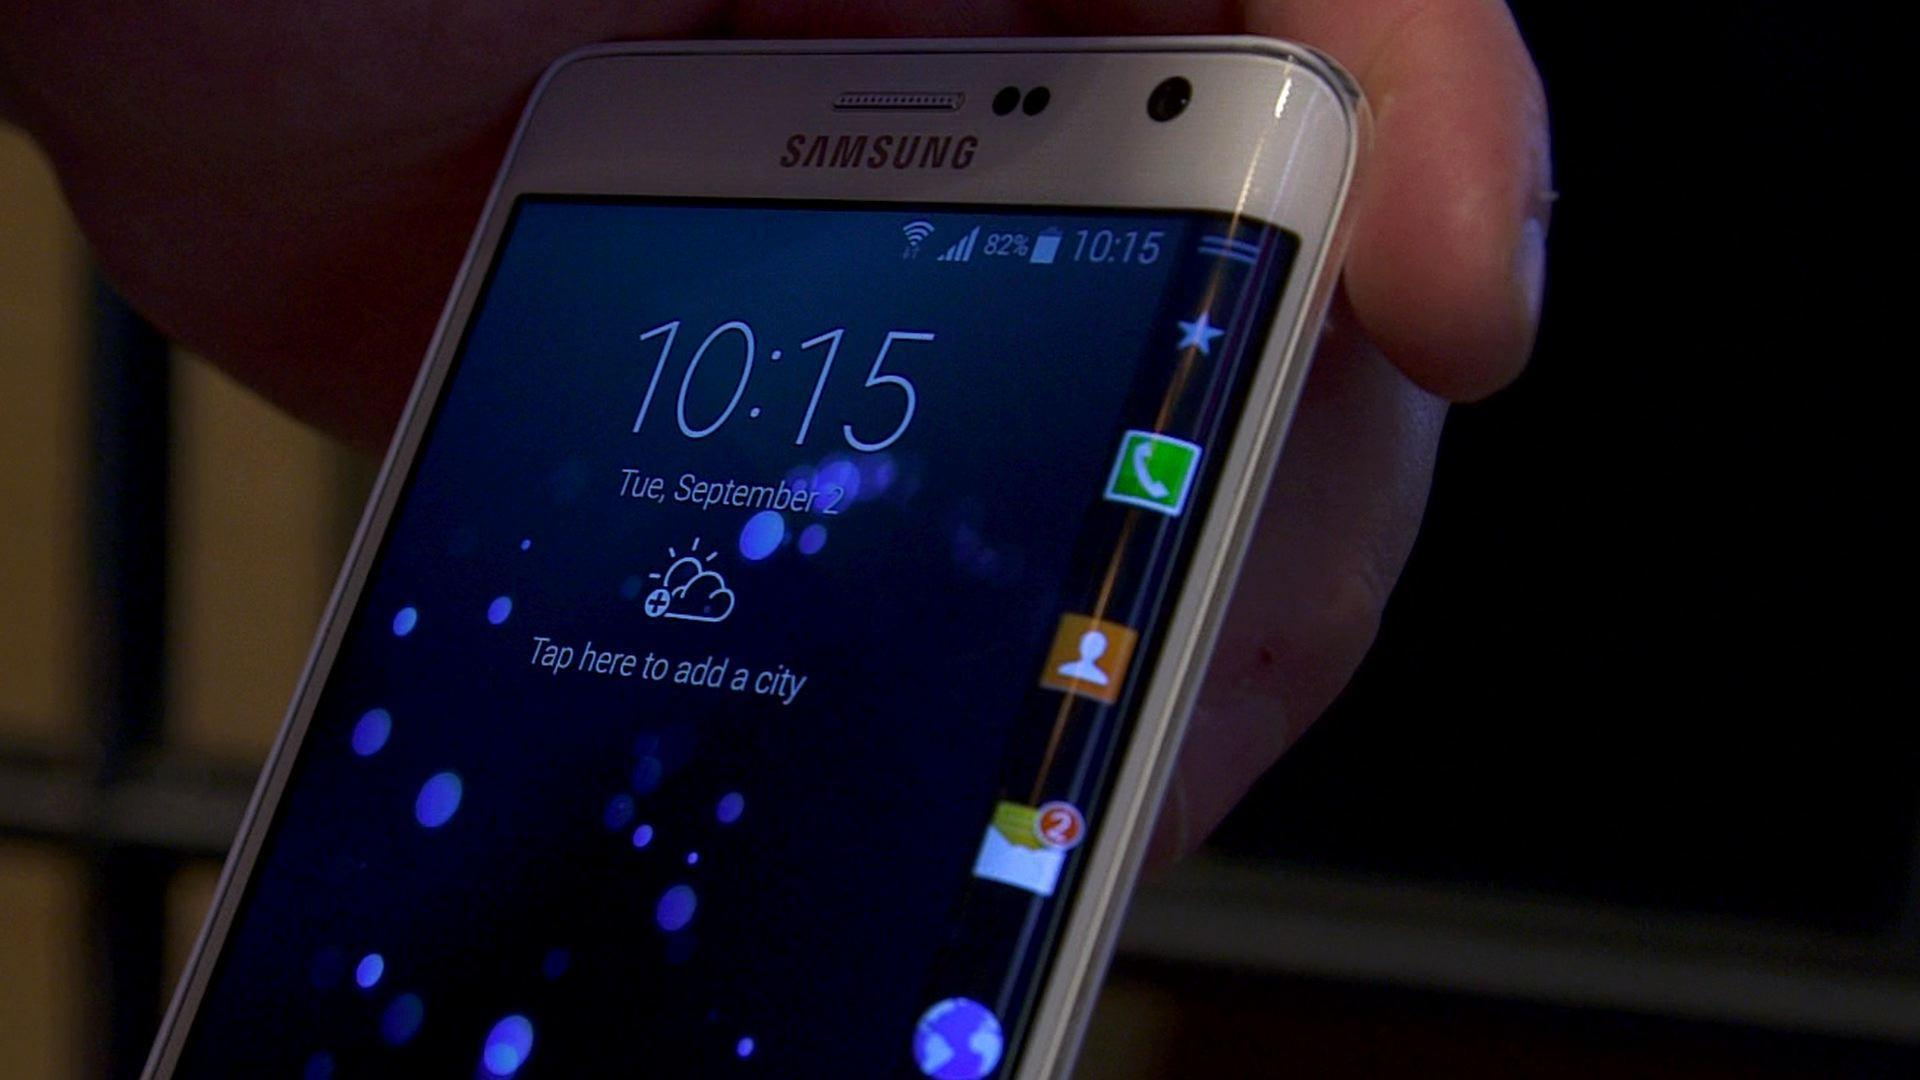 samsung galaxy note edge and galaxy note 4 2 new phones. Black Bedroom Furniture Sets. Home Design Ideas